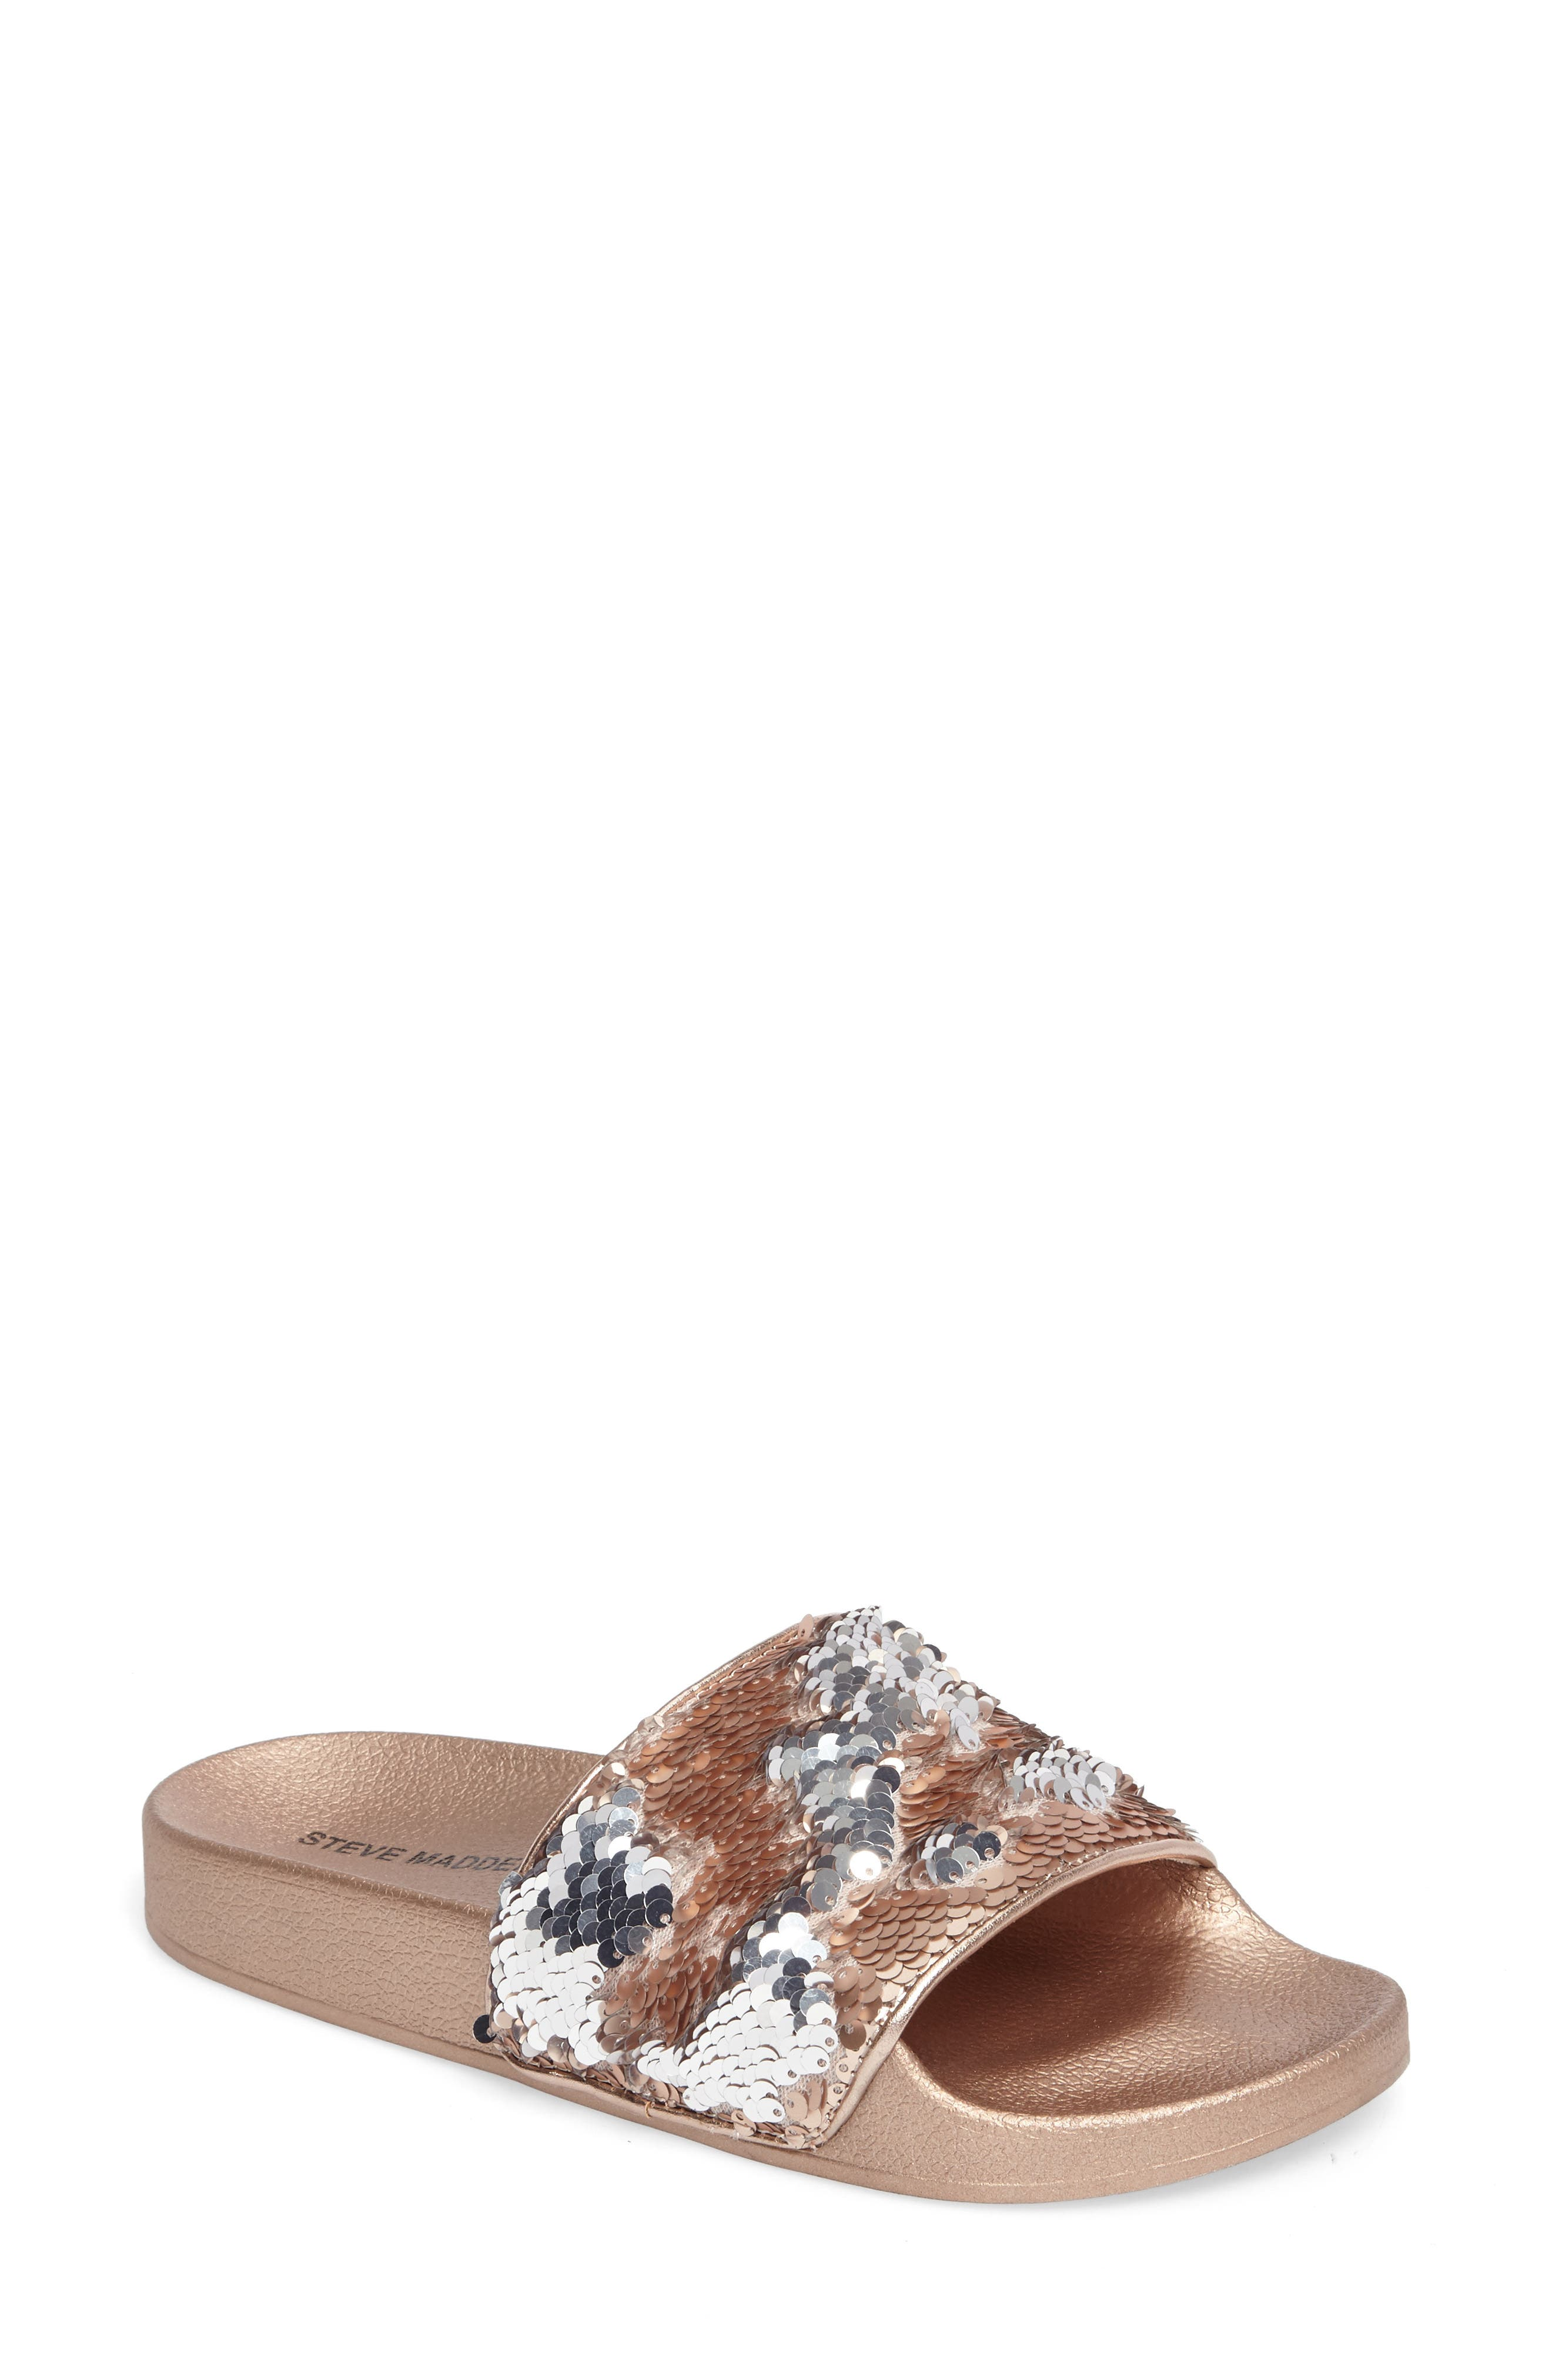 Alternate Image 1 Selected - Steve Madden Softey Sequin Slide Sandal (Women)